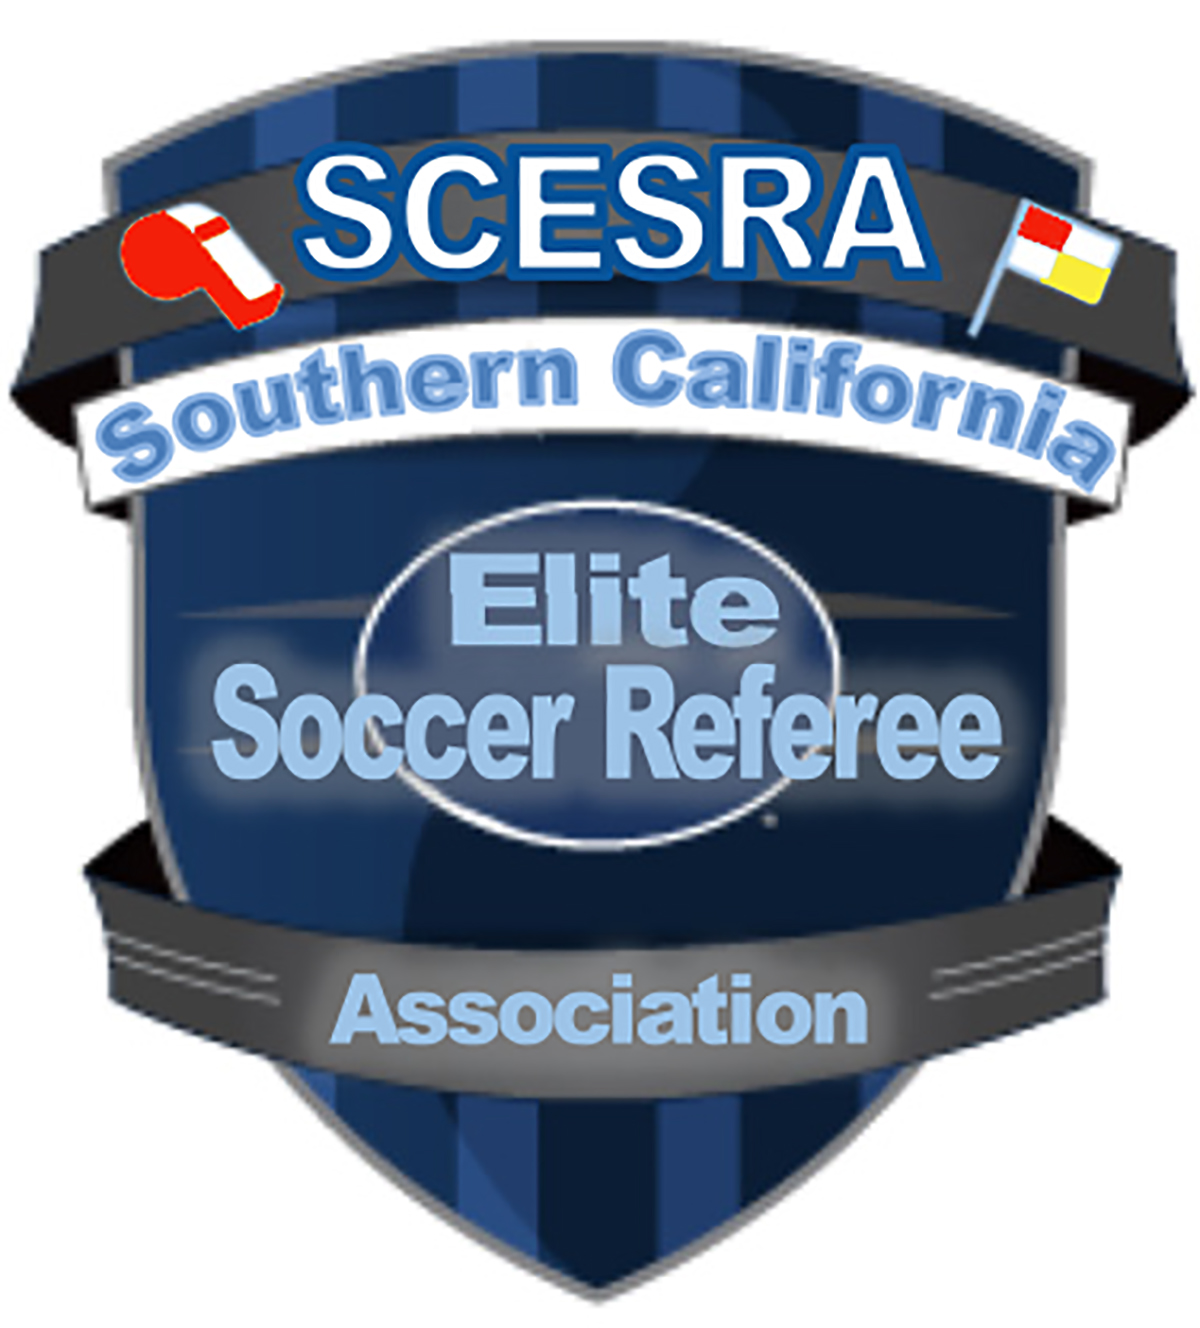 Southern California Elite Soccer Referee Association